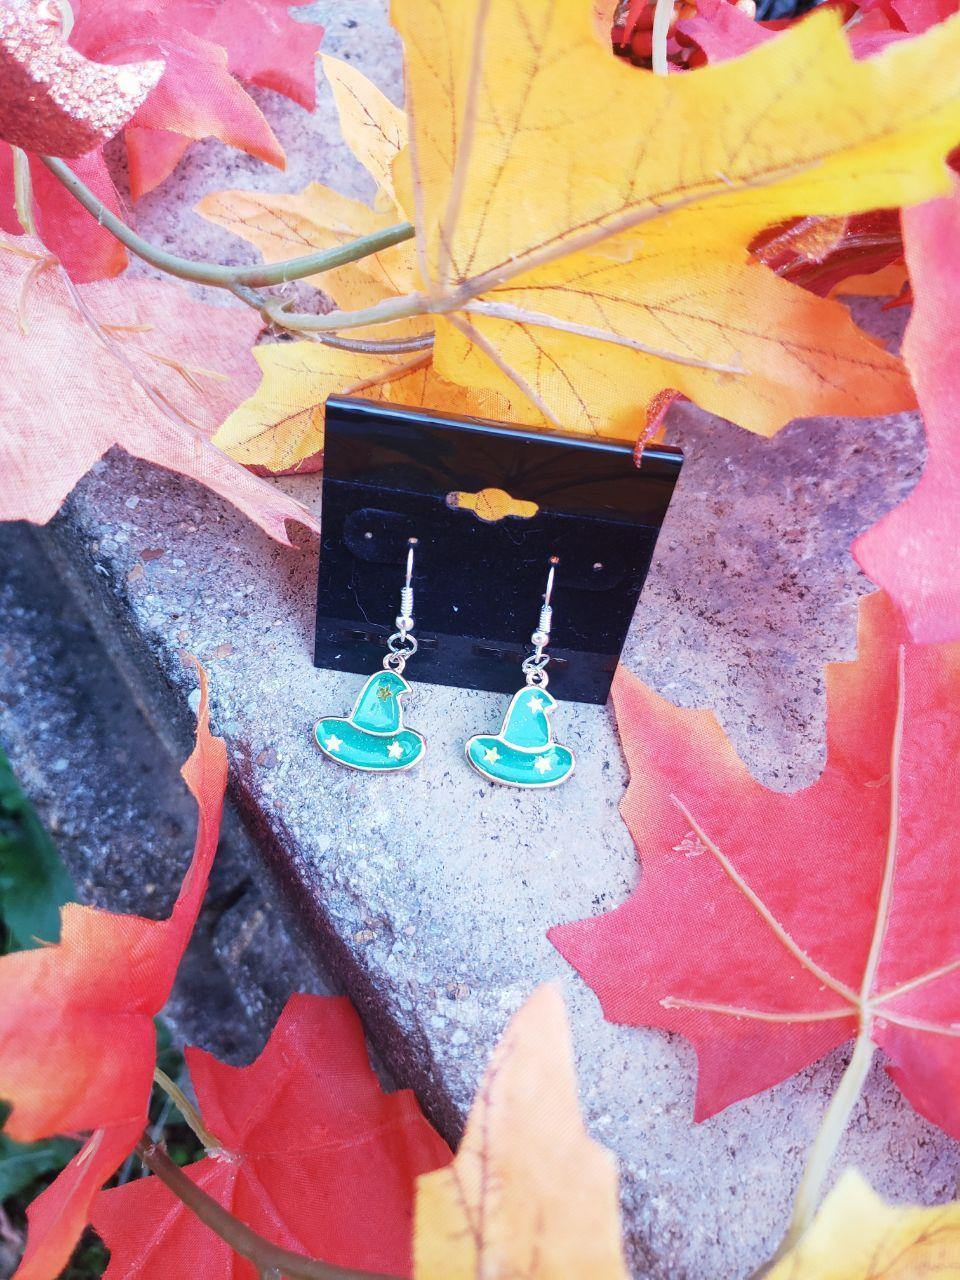 Halloween Enamel Earrings, Earrings, Earrings, Enamel, Halloween/Fall, Limited Edition, Wearable - Sciggles